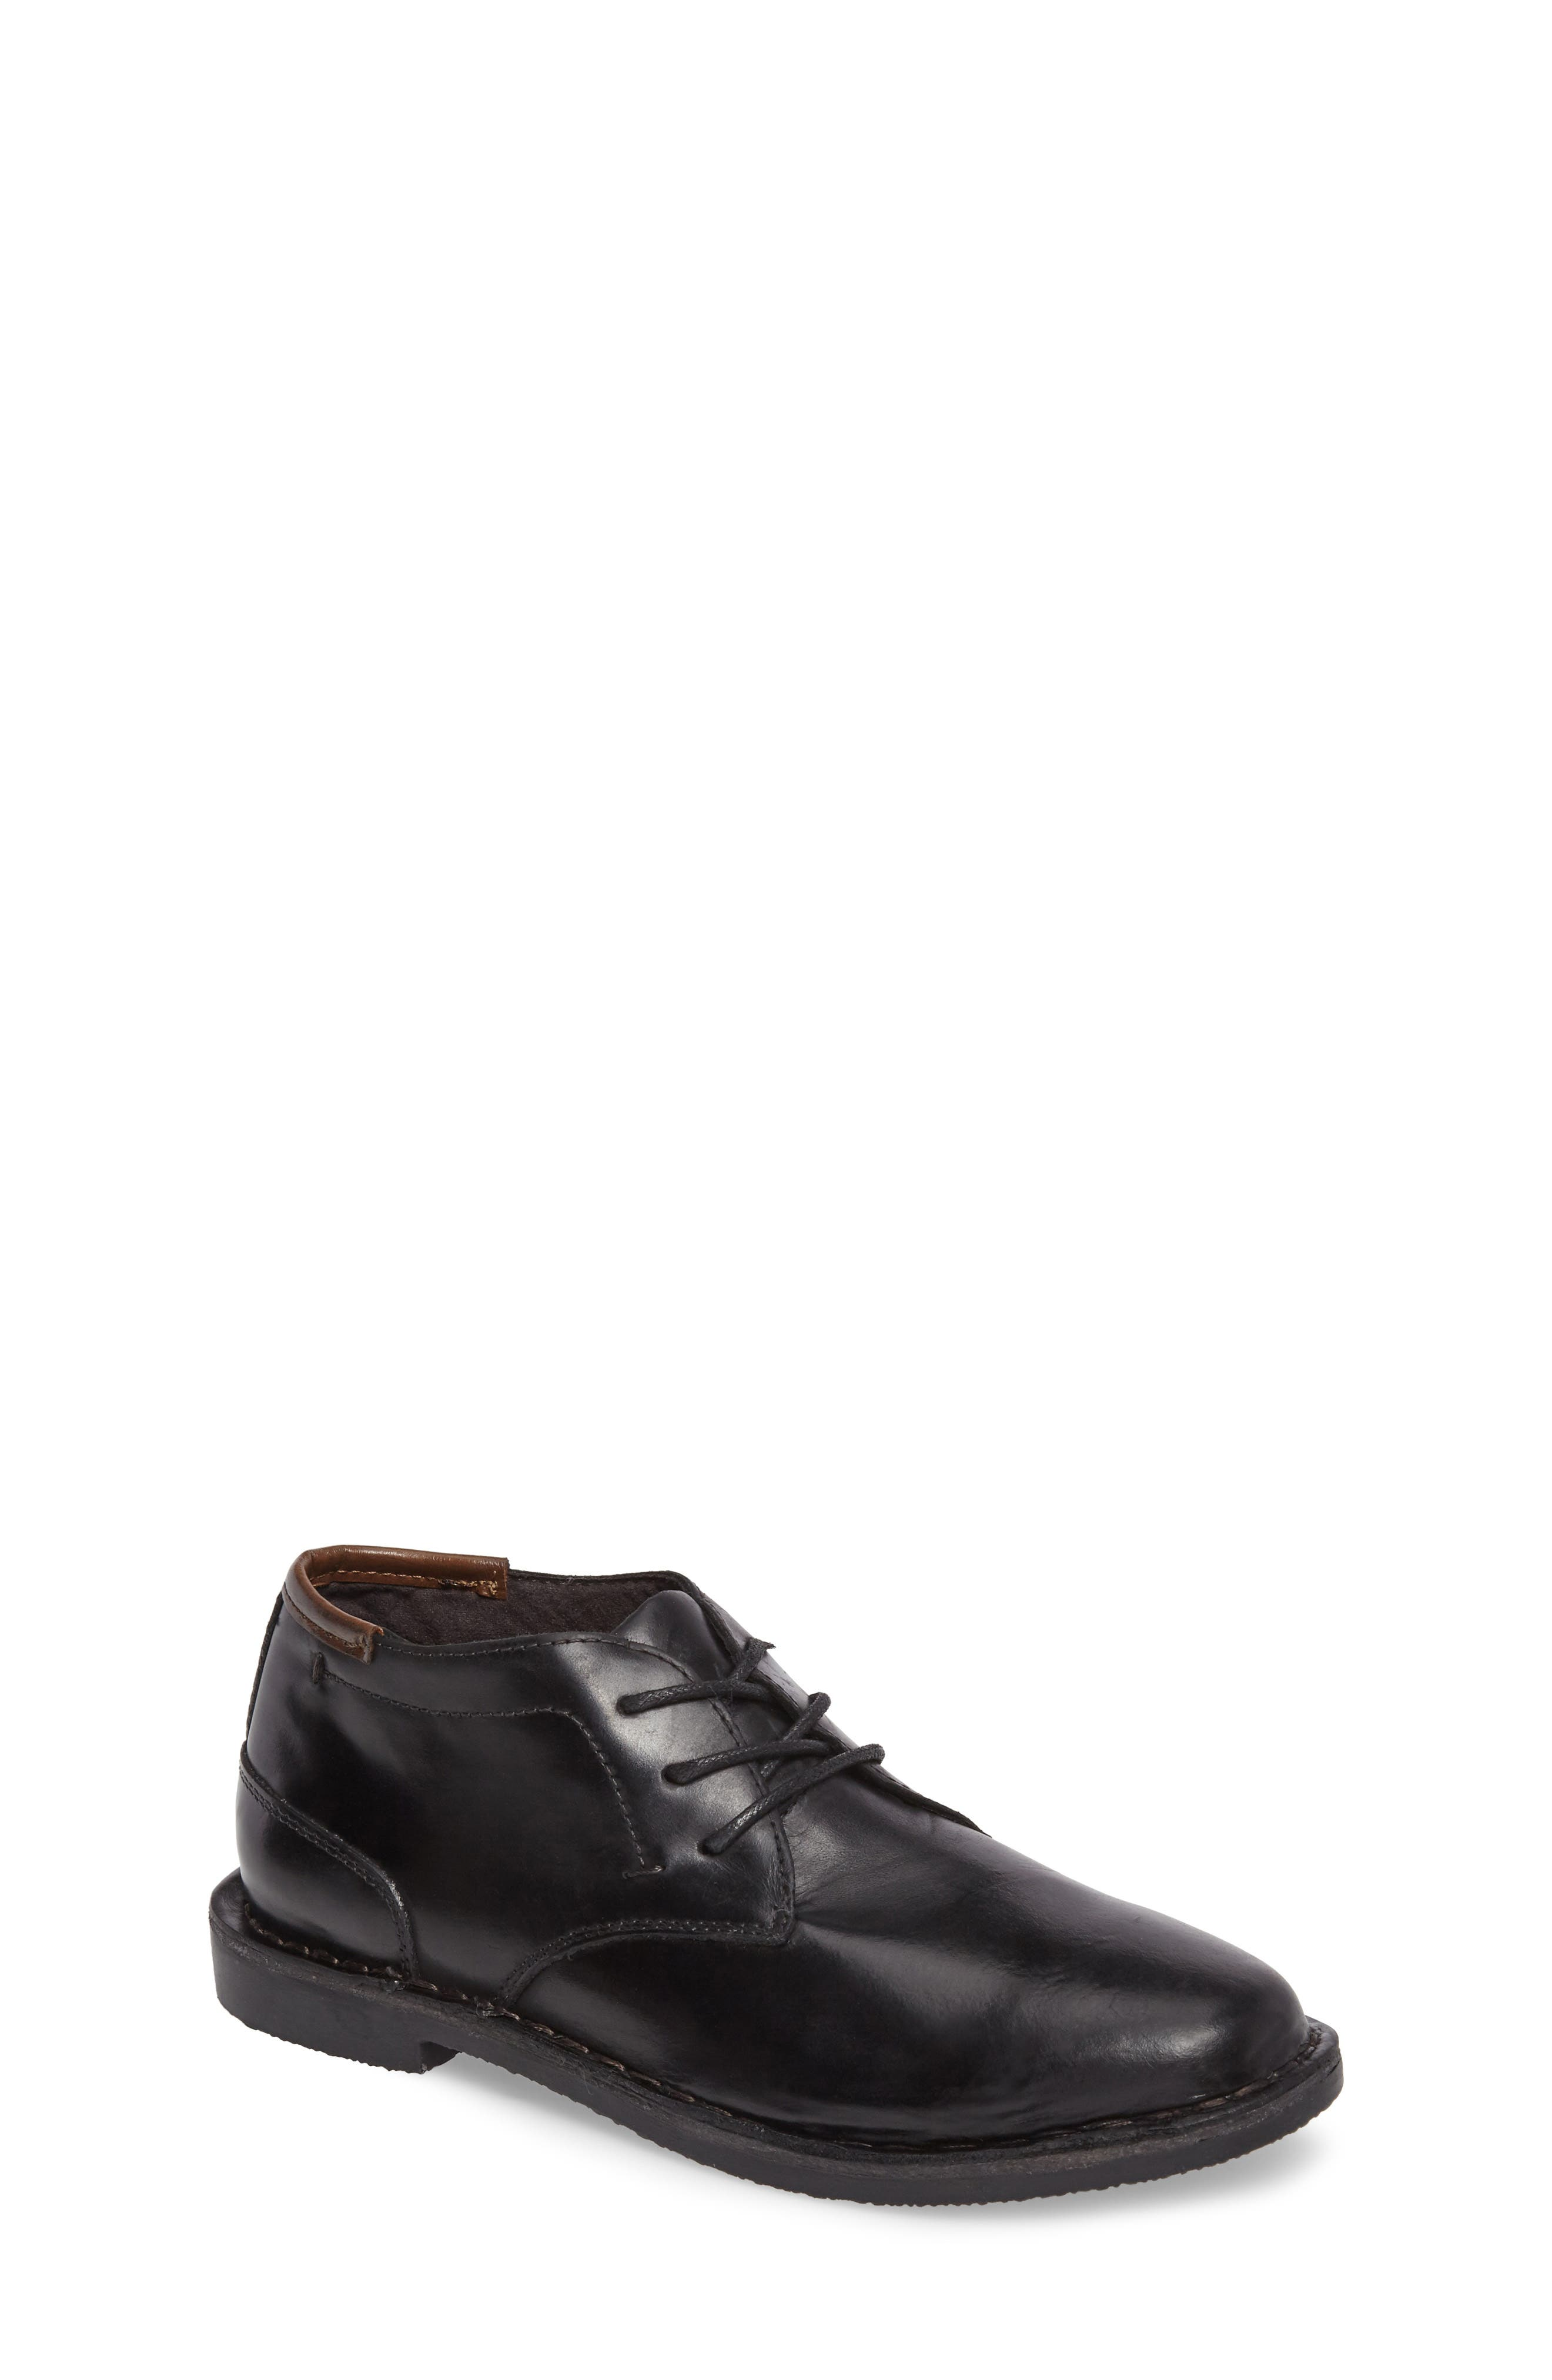 KENNETH COLE NEW YORK Real Deal Chukka Boot, Main, color, BLACK LEATHER